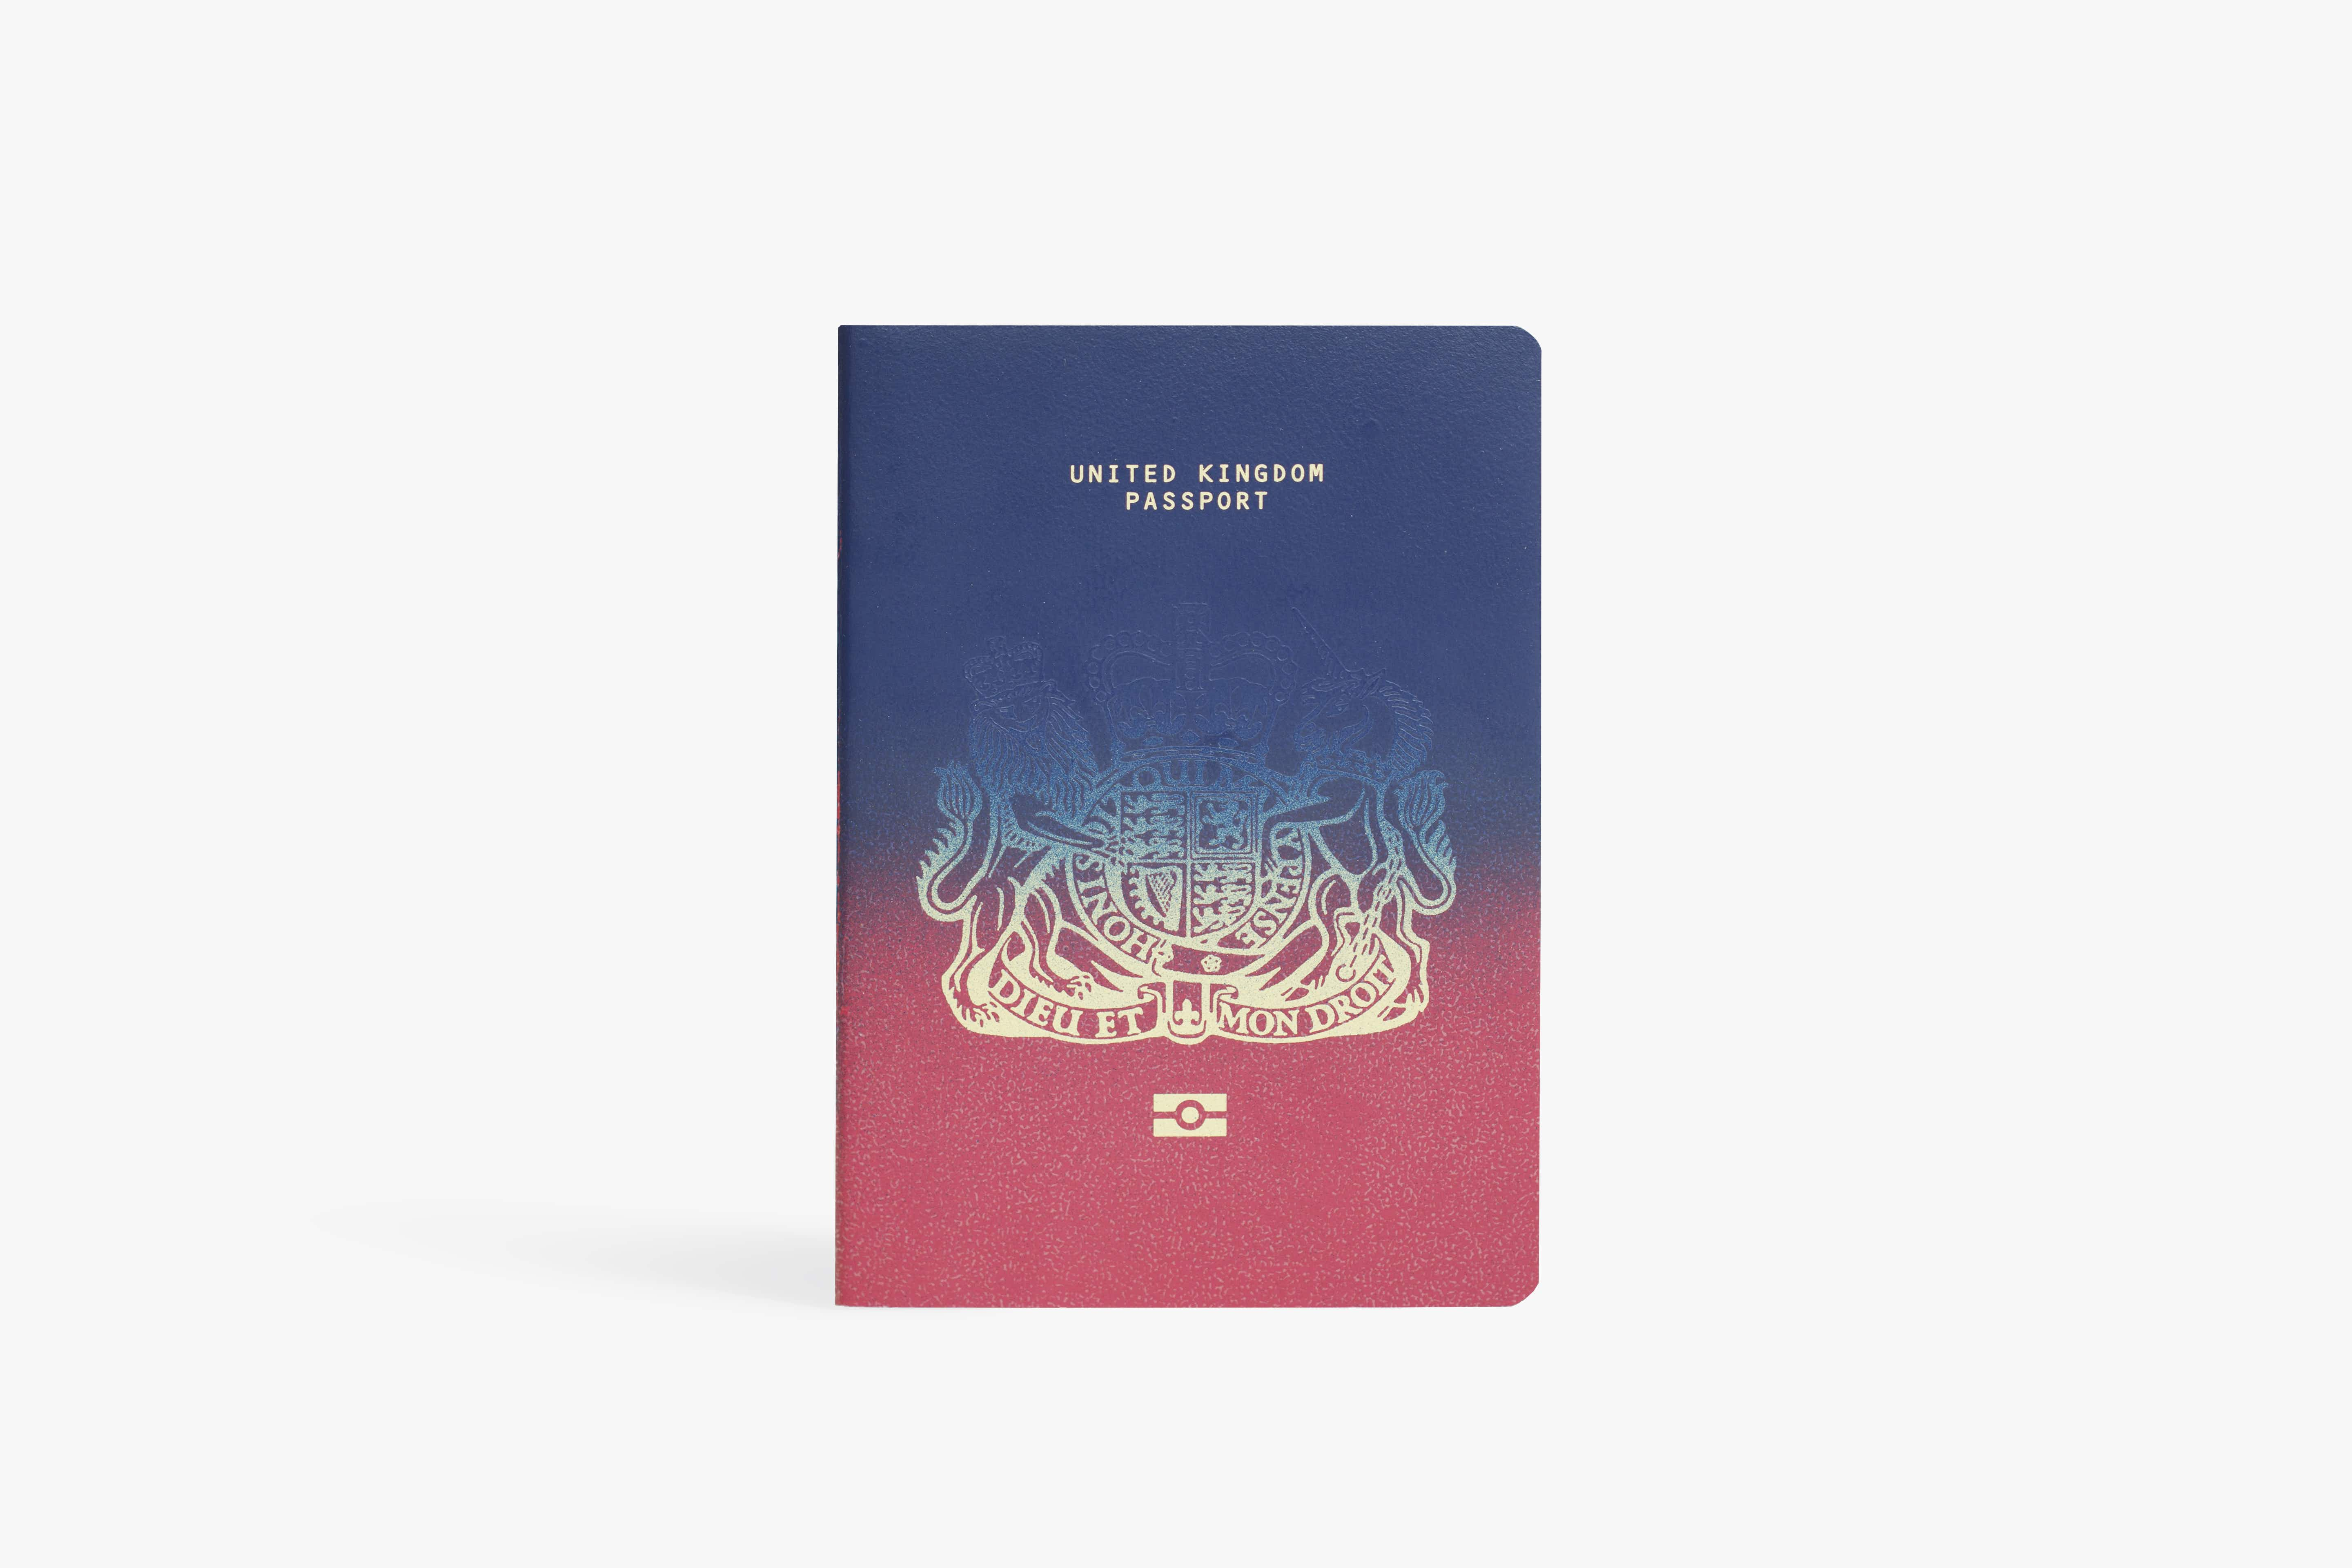 The winner of the Brexit passport design competition has been announced